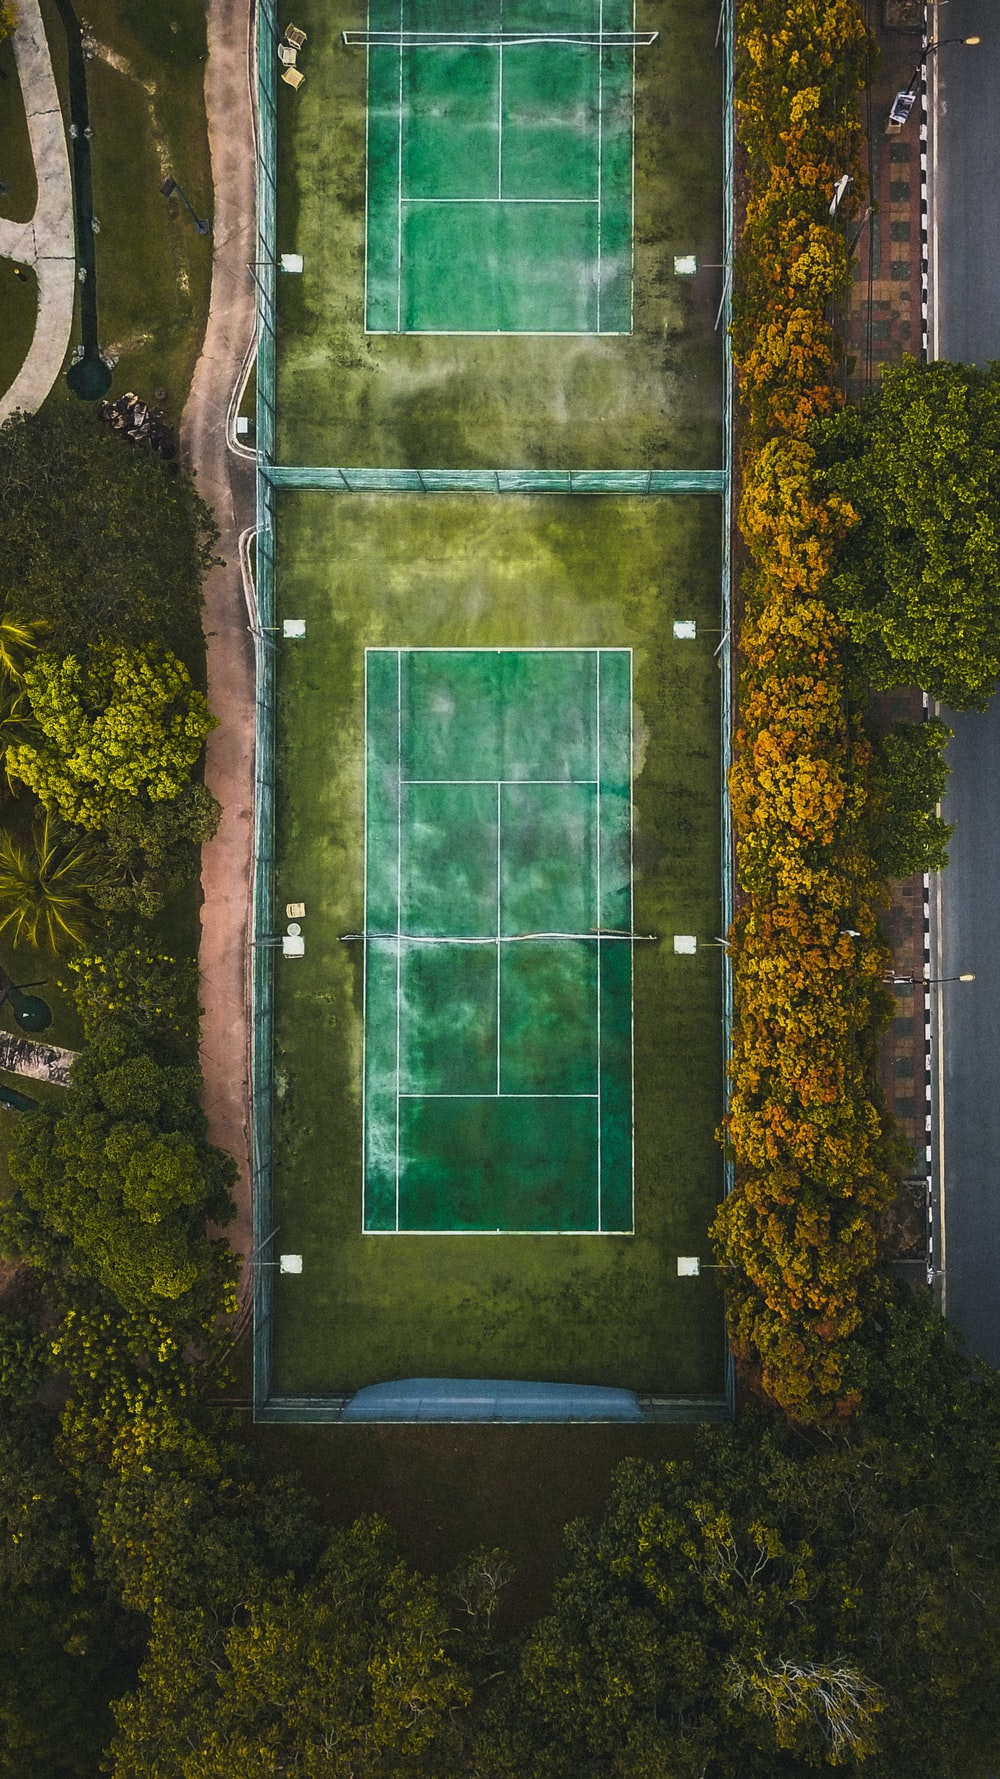 aerial view of sports court between trees